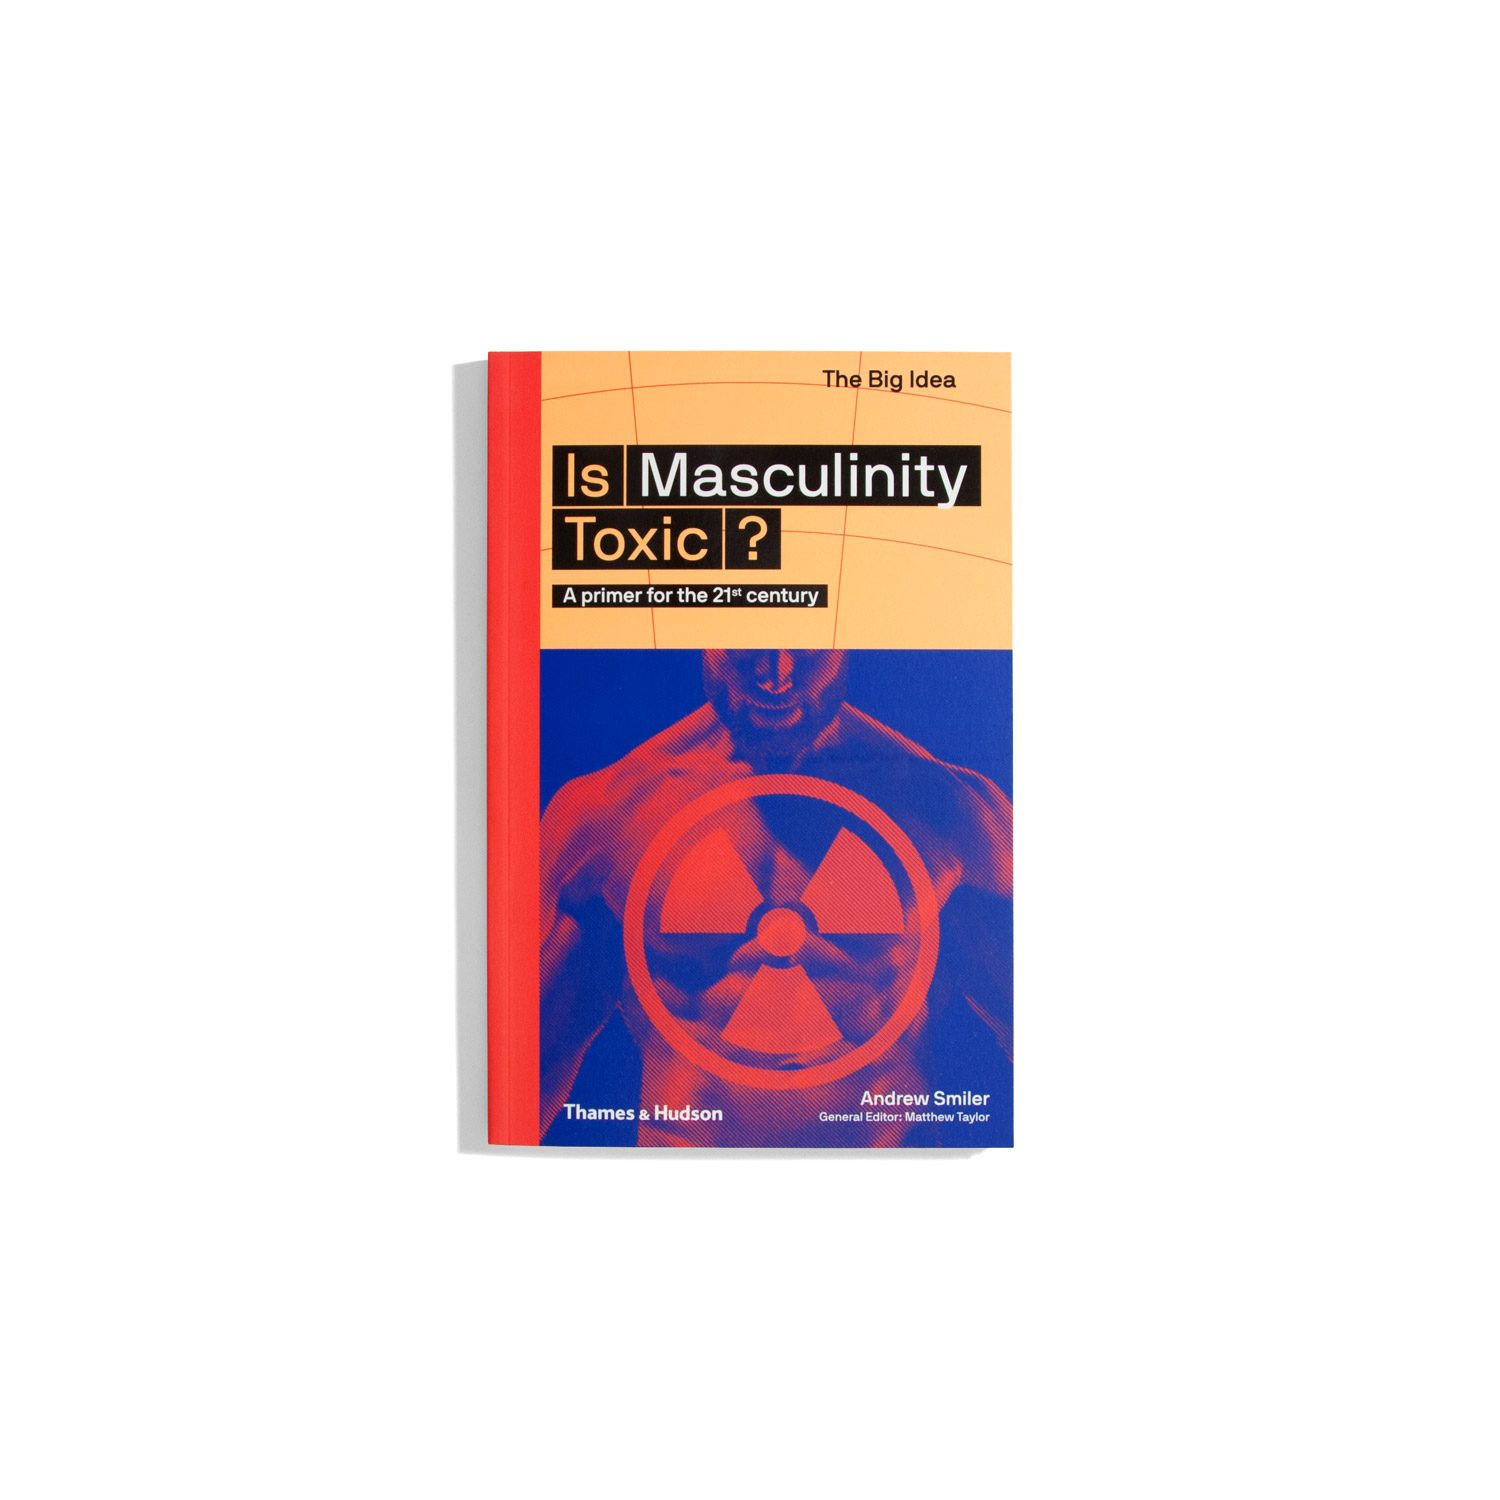 Is Masculinity toxic? - Andrew Smiler A primer for the 21st century (The Big Idea)